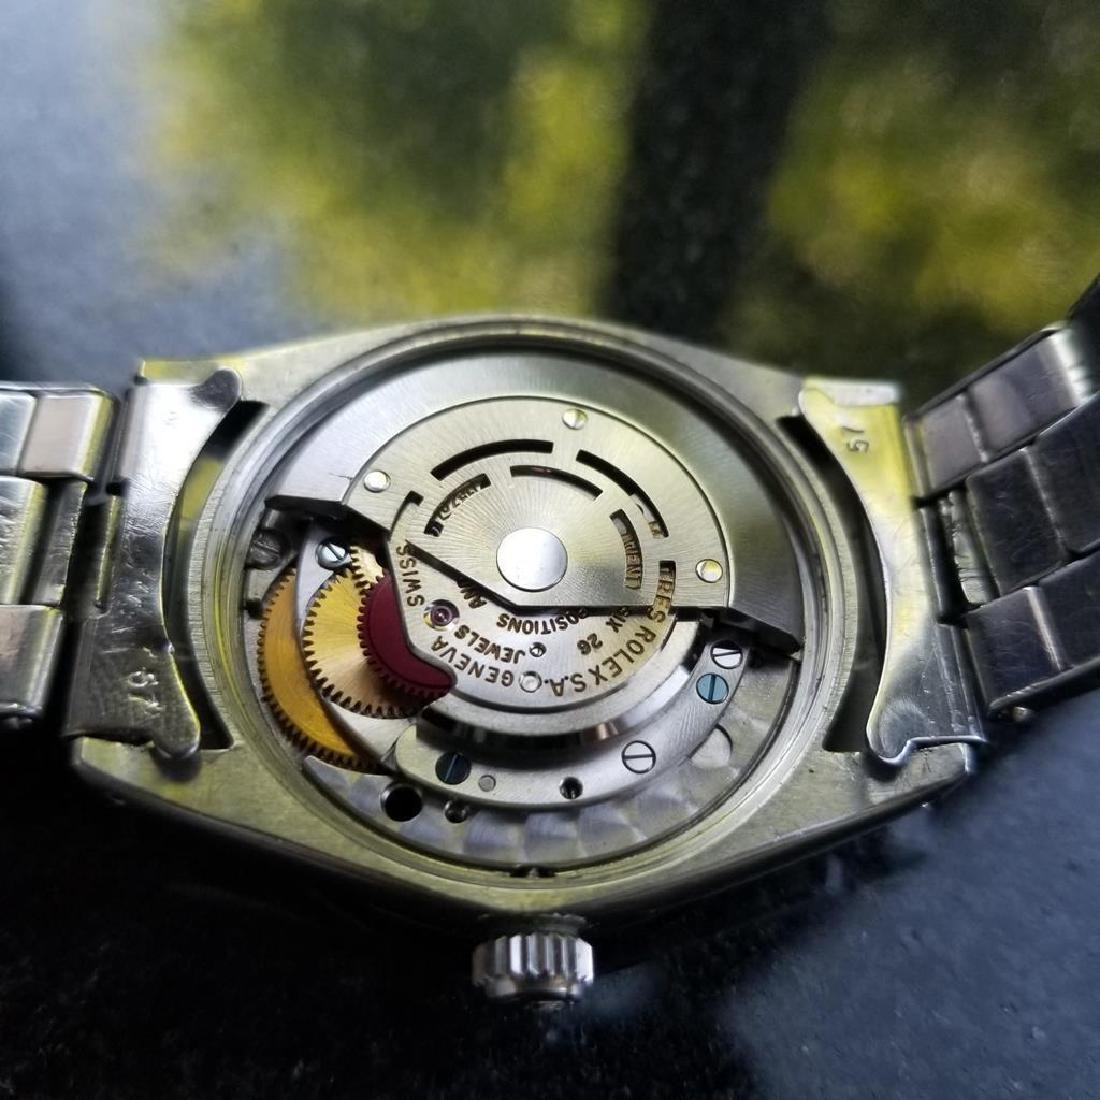 ROLEX Men's Oyster Perpetual 1007 Automatic cal.1570 - 9